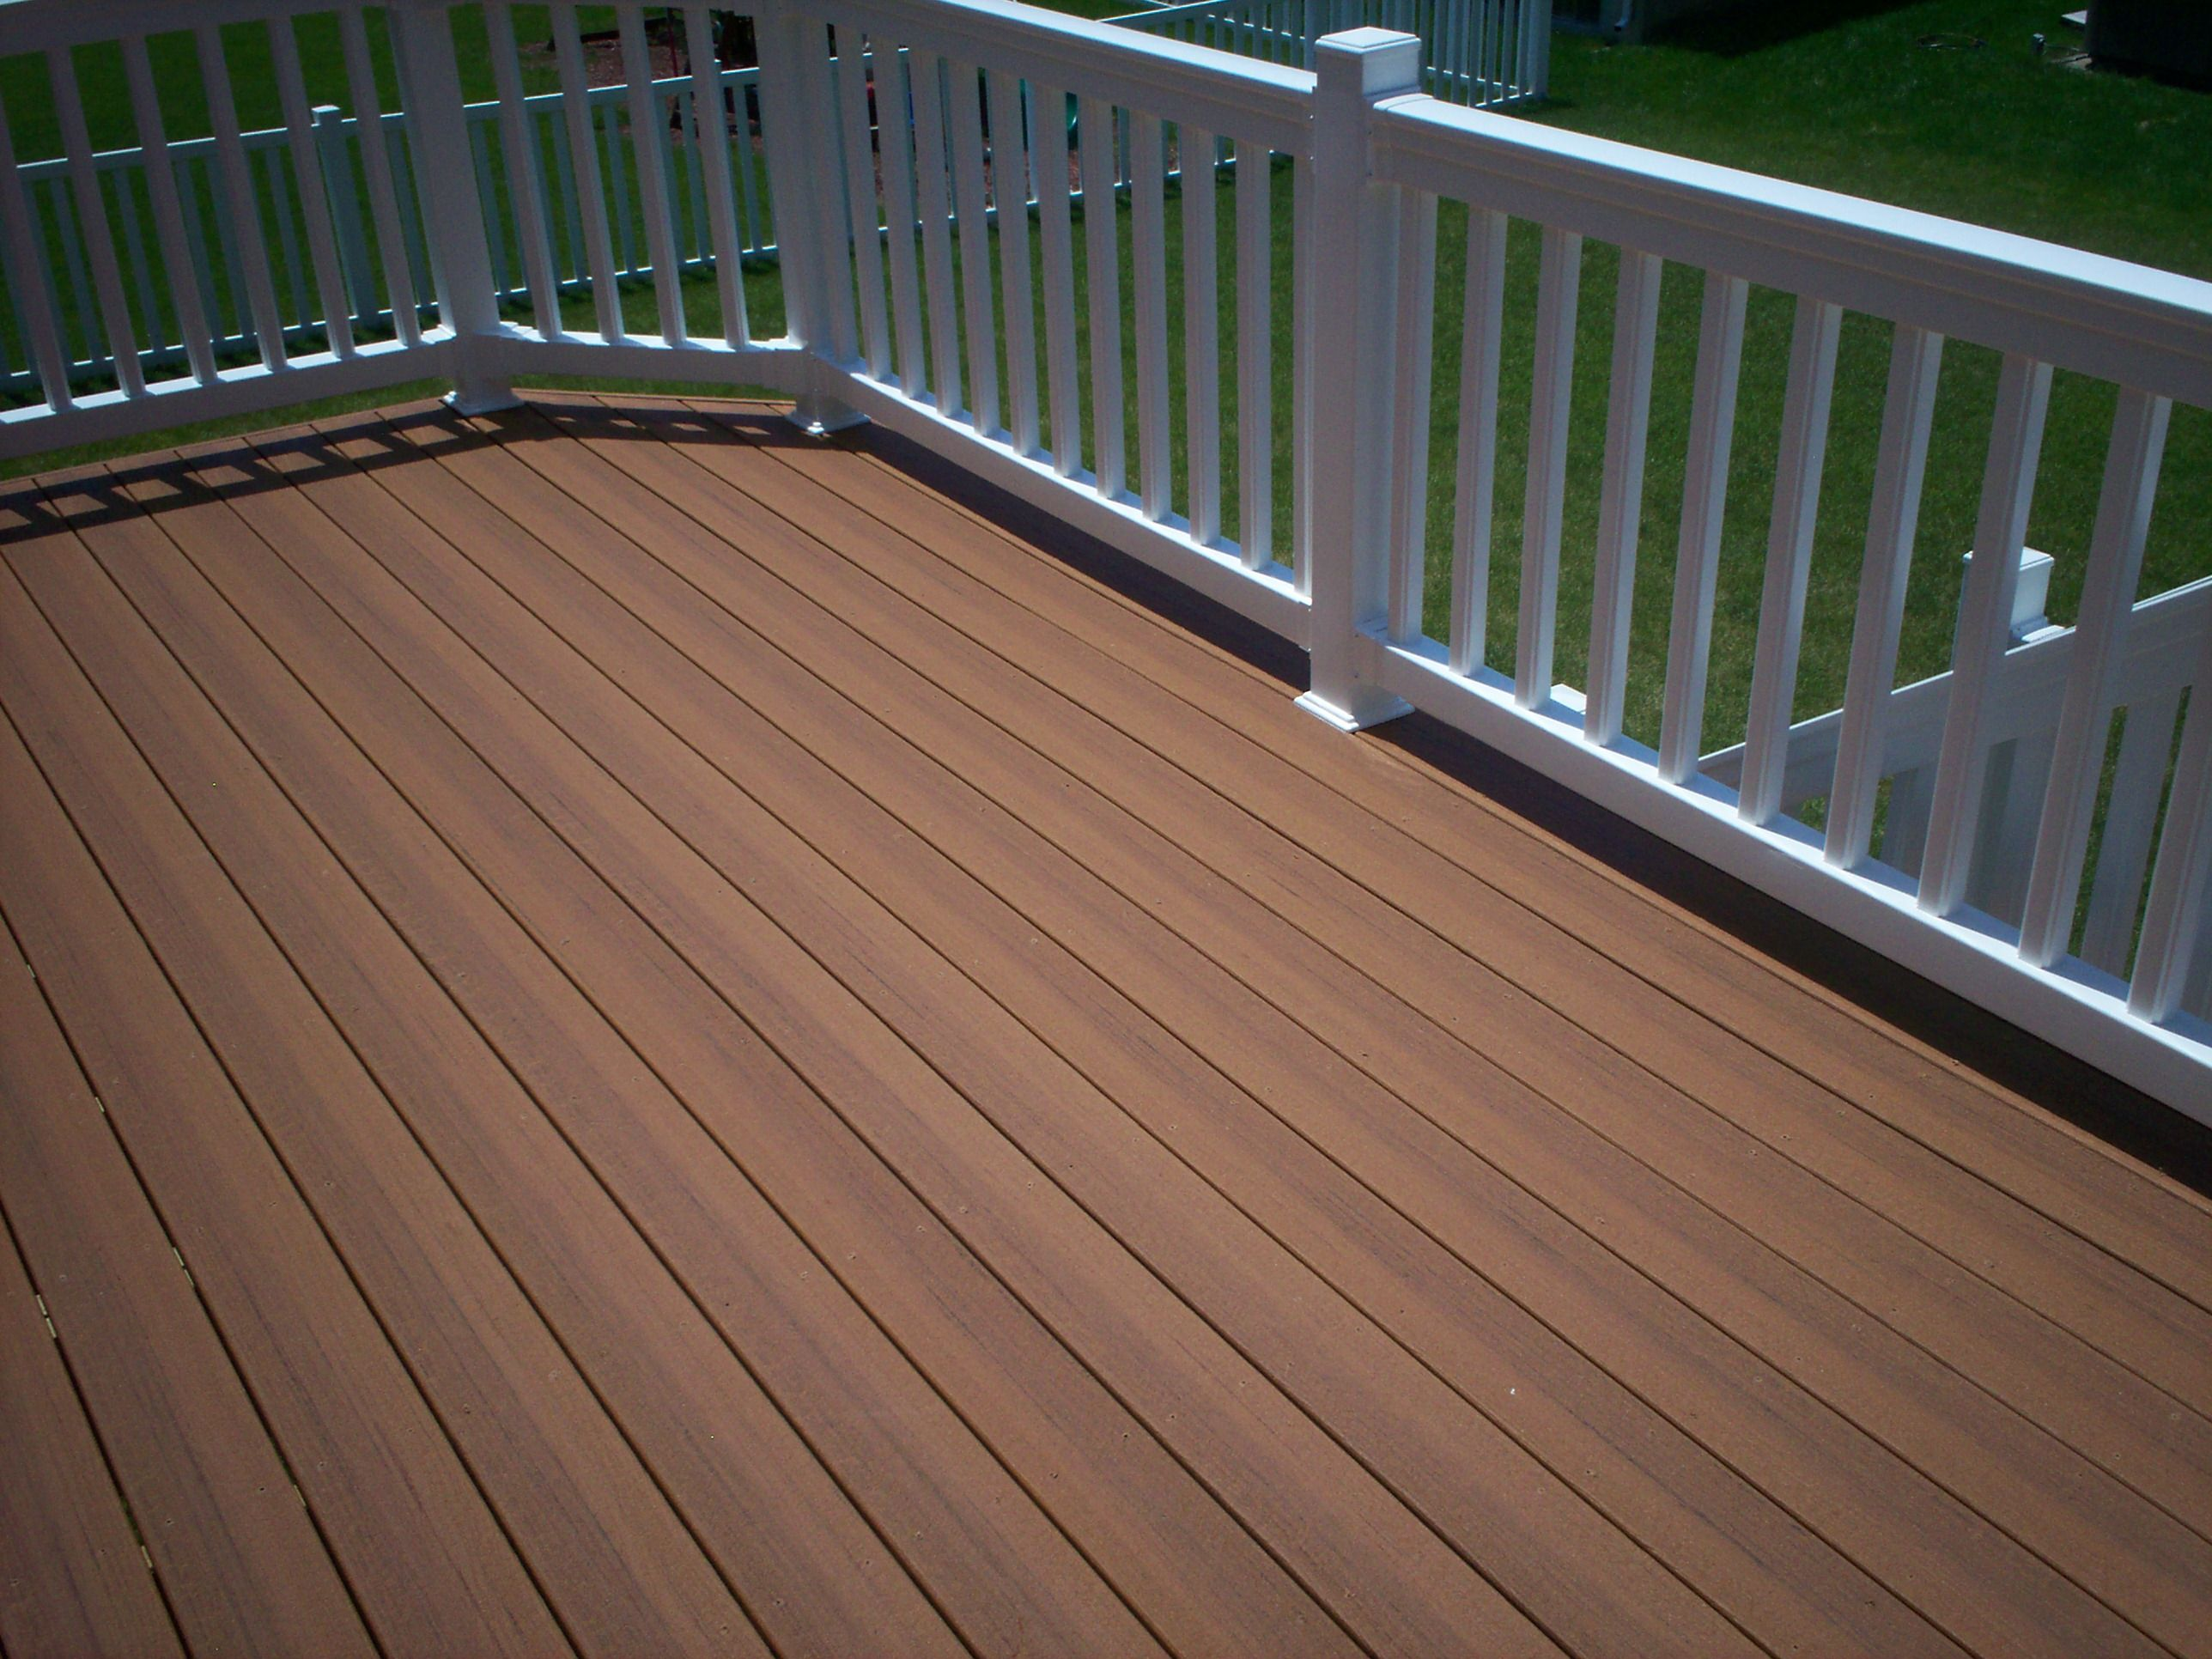 Deck Design Home Depot Outstanding Interior Boards Lowes Premium 2 215 6 Treated Lumber Cedar Decking Kiln Dried Trex Deck Colors Composite Decking Trex Deck